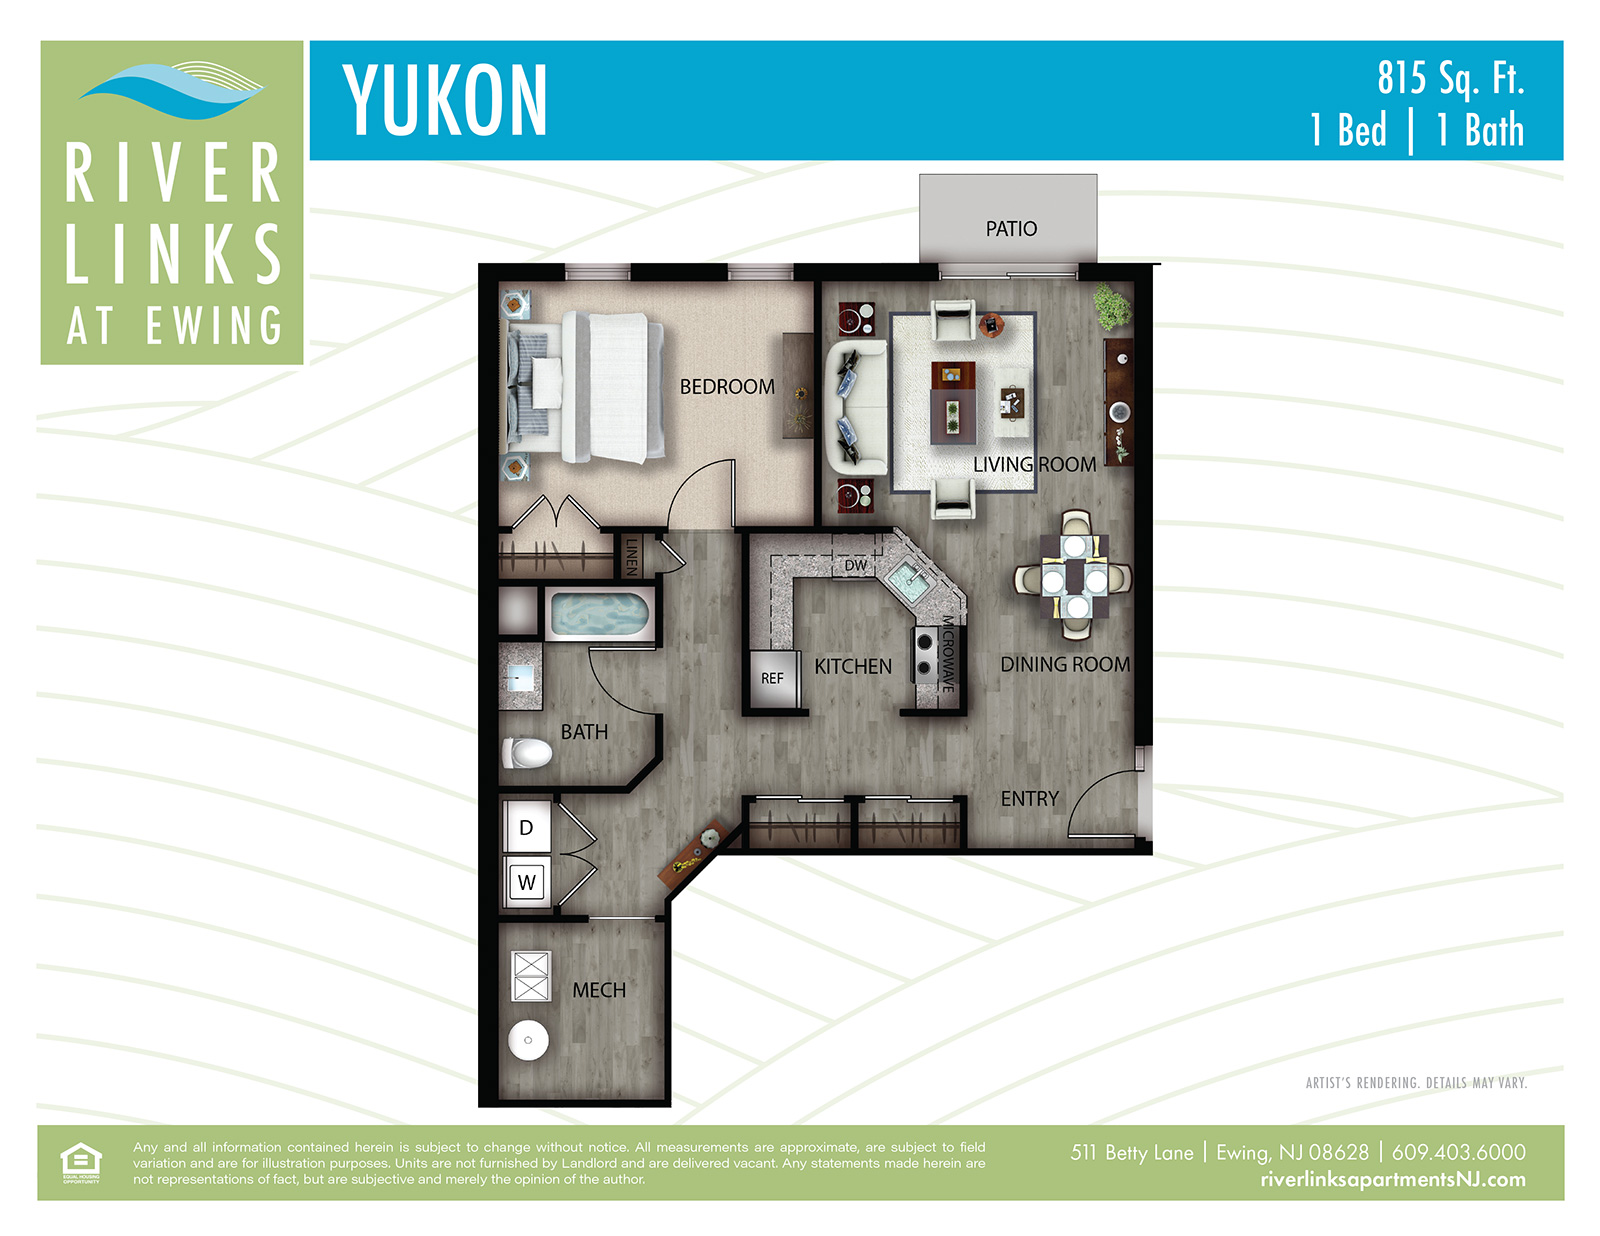 Yukon - 1 Bedroom/1 Bath